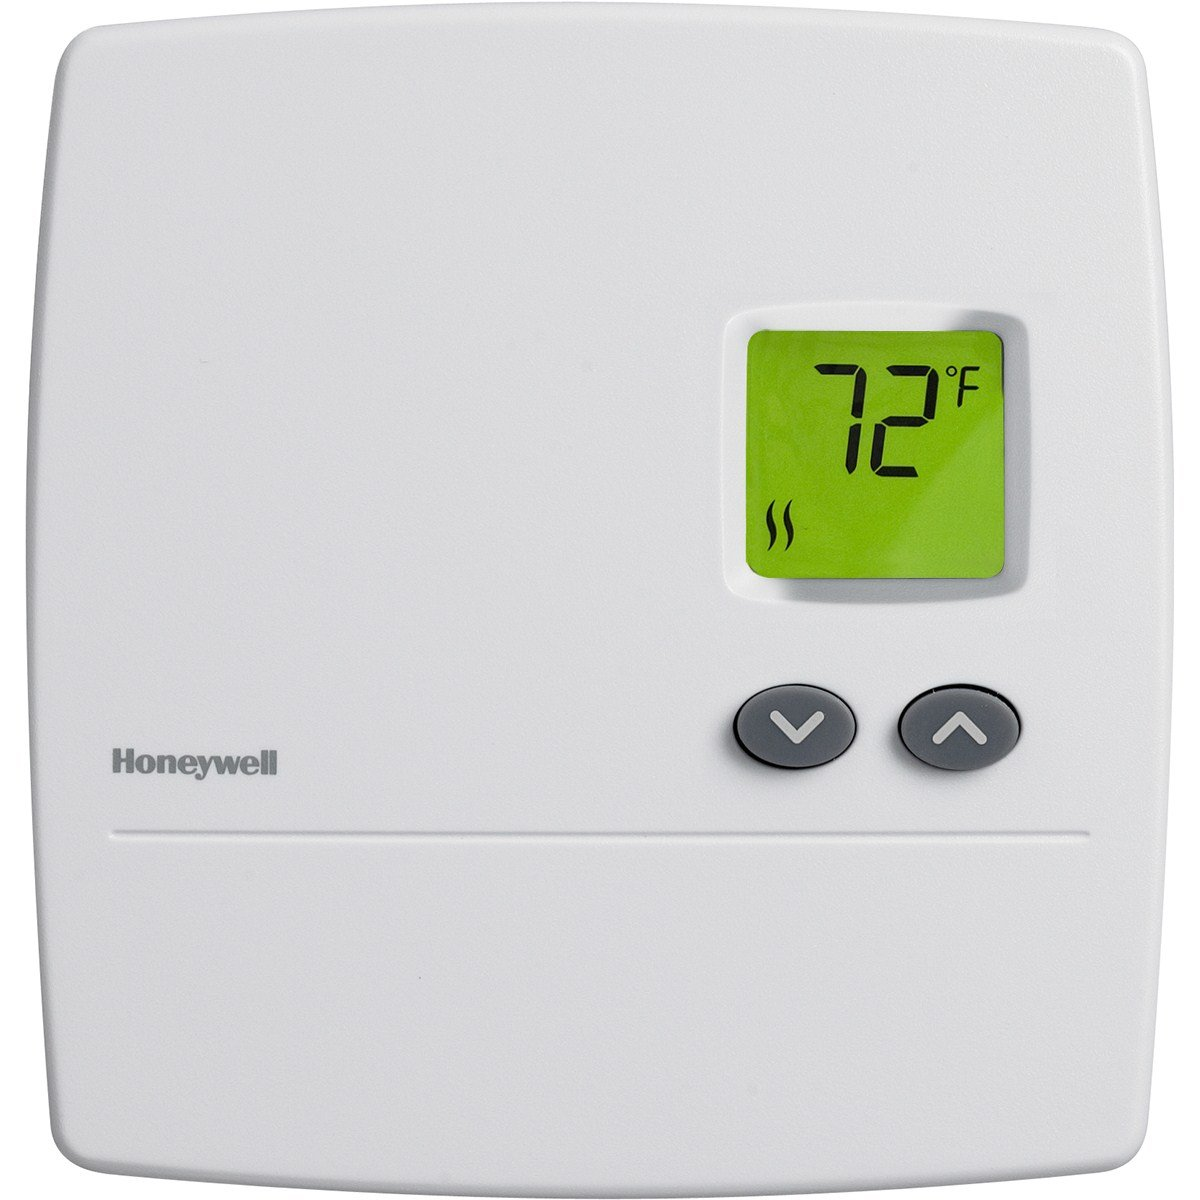 Honeywell rlv3100a1017 e non programmable thermostat for for Electric radiant heat thermostat